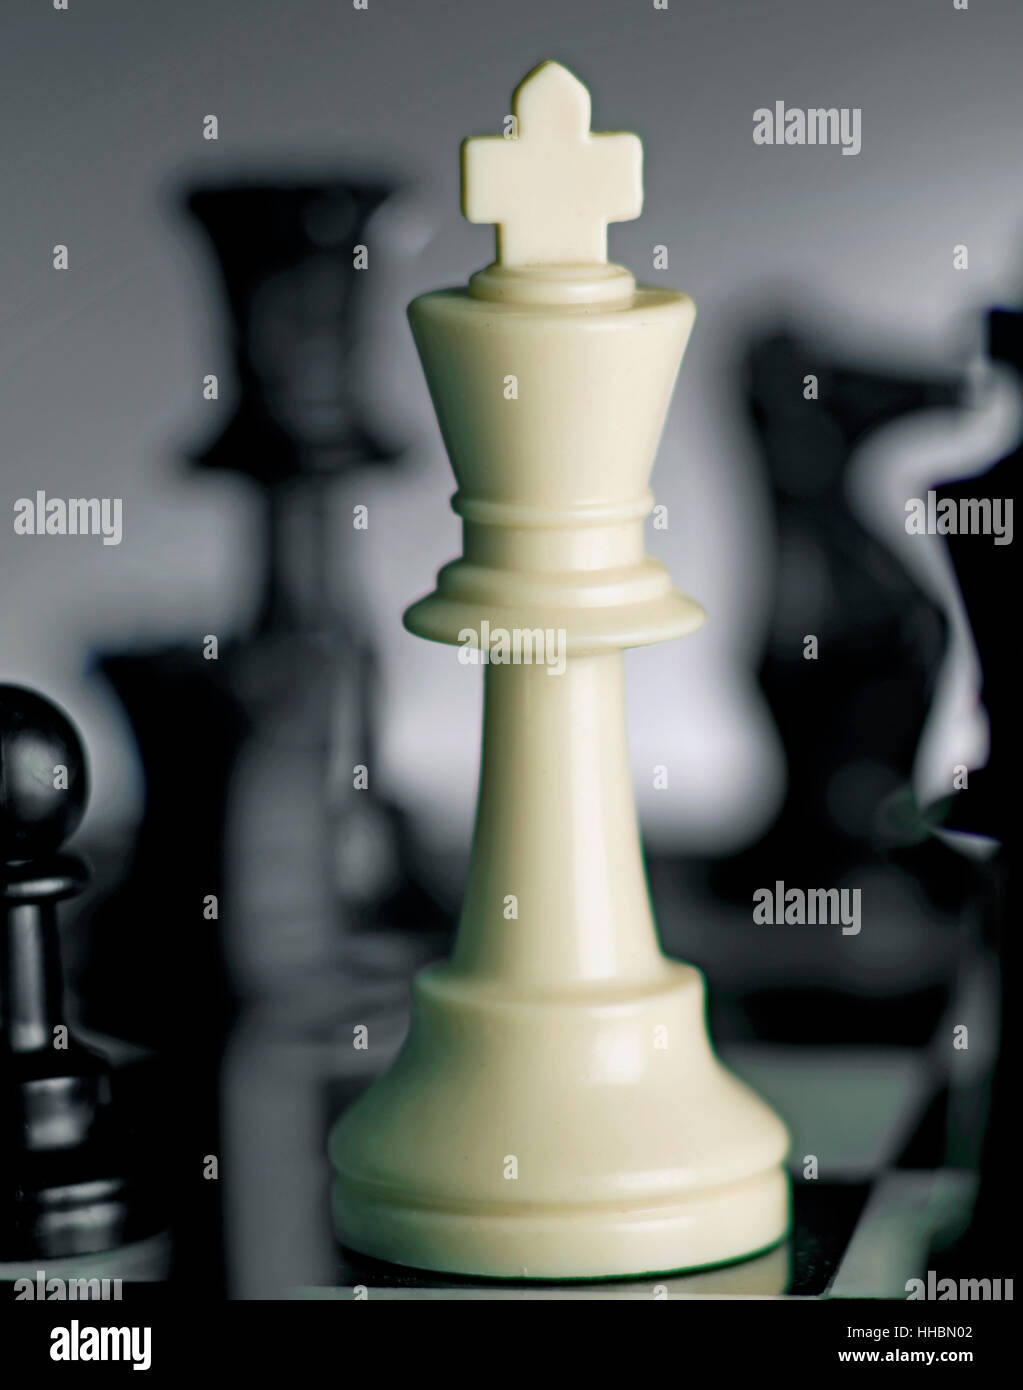 chess king on board hero - Stock Image